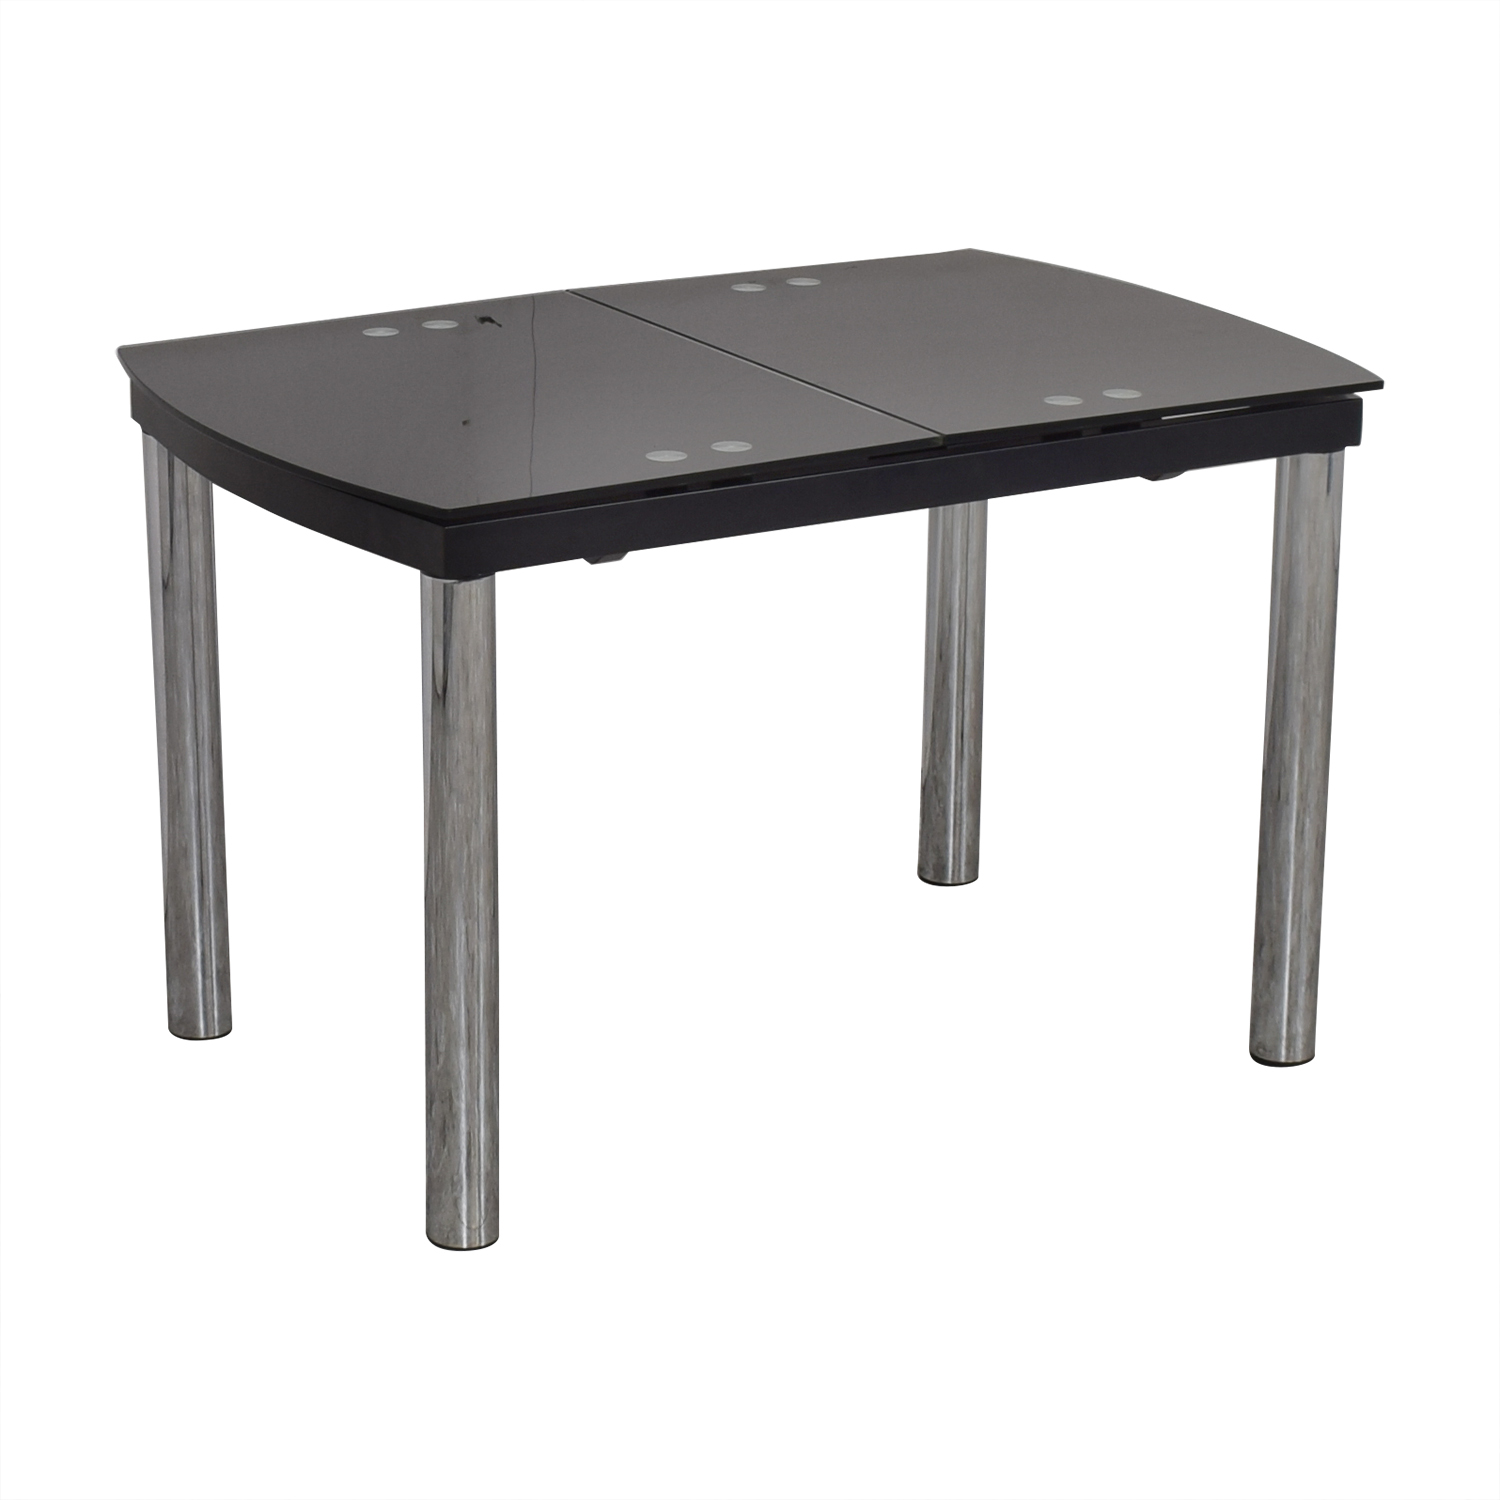 Structube Extendable Dining Table sale